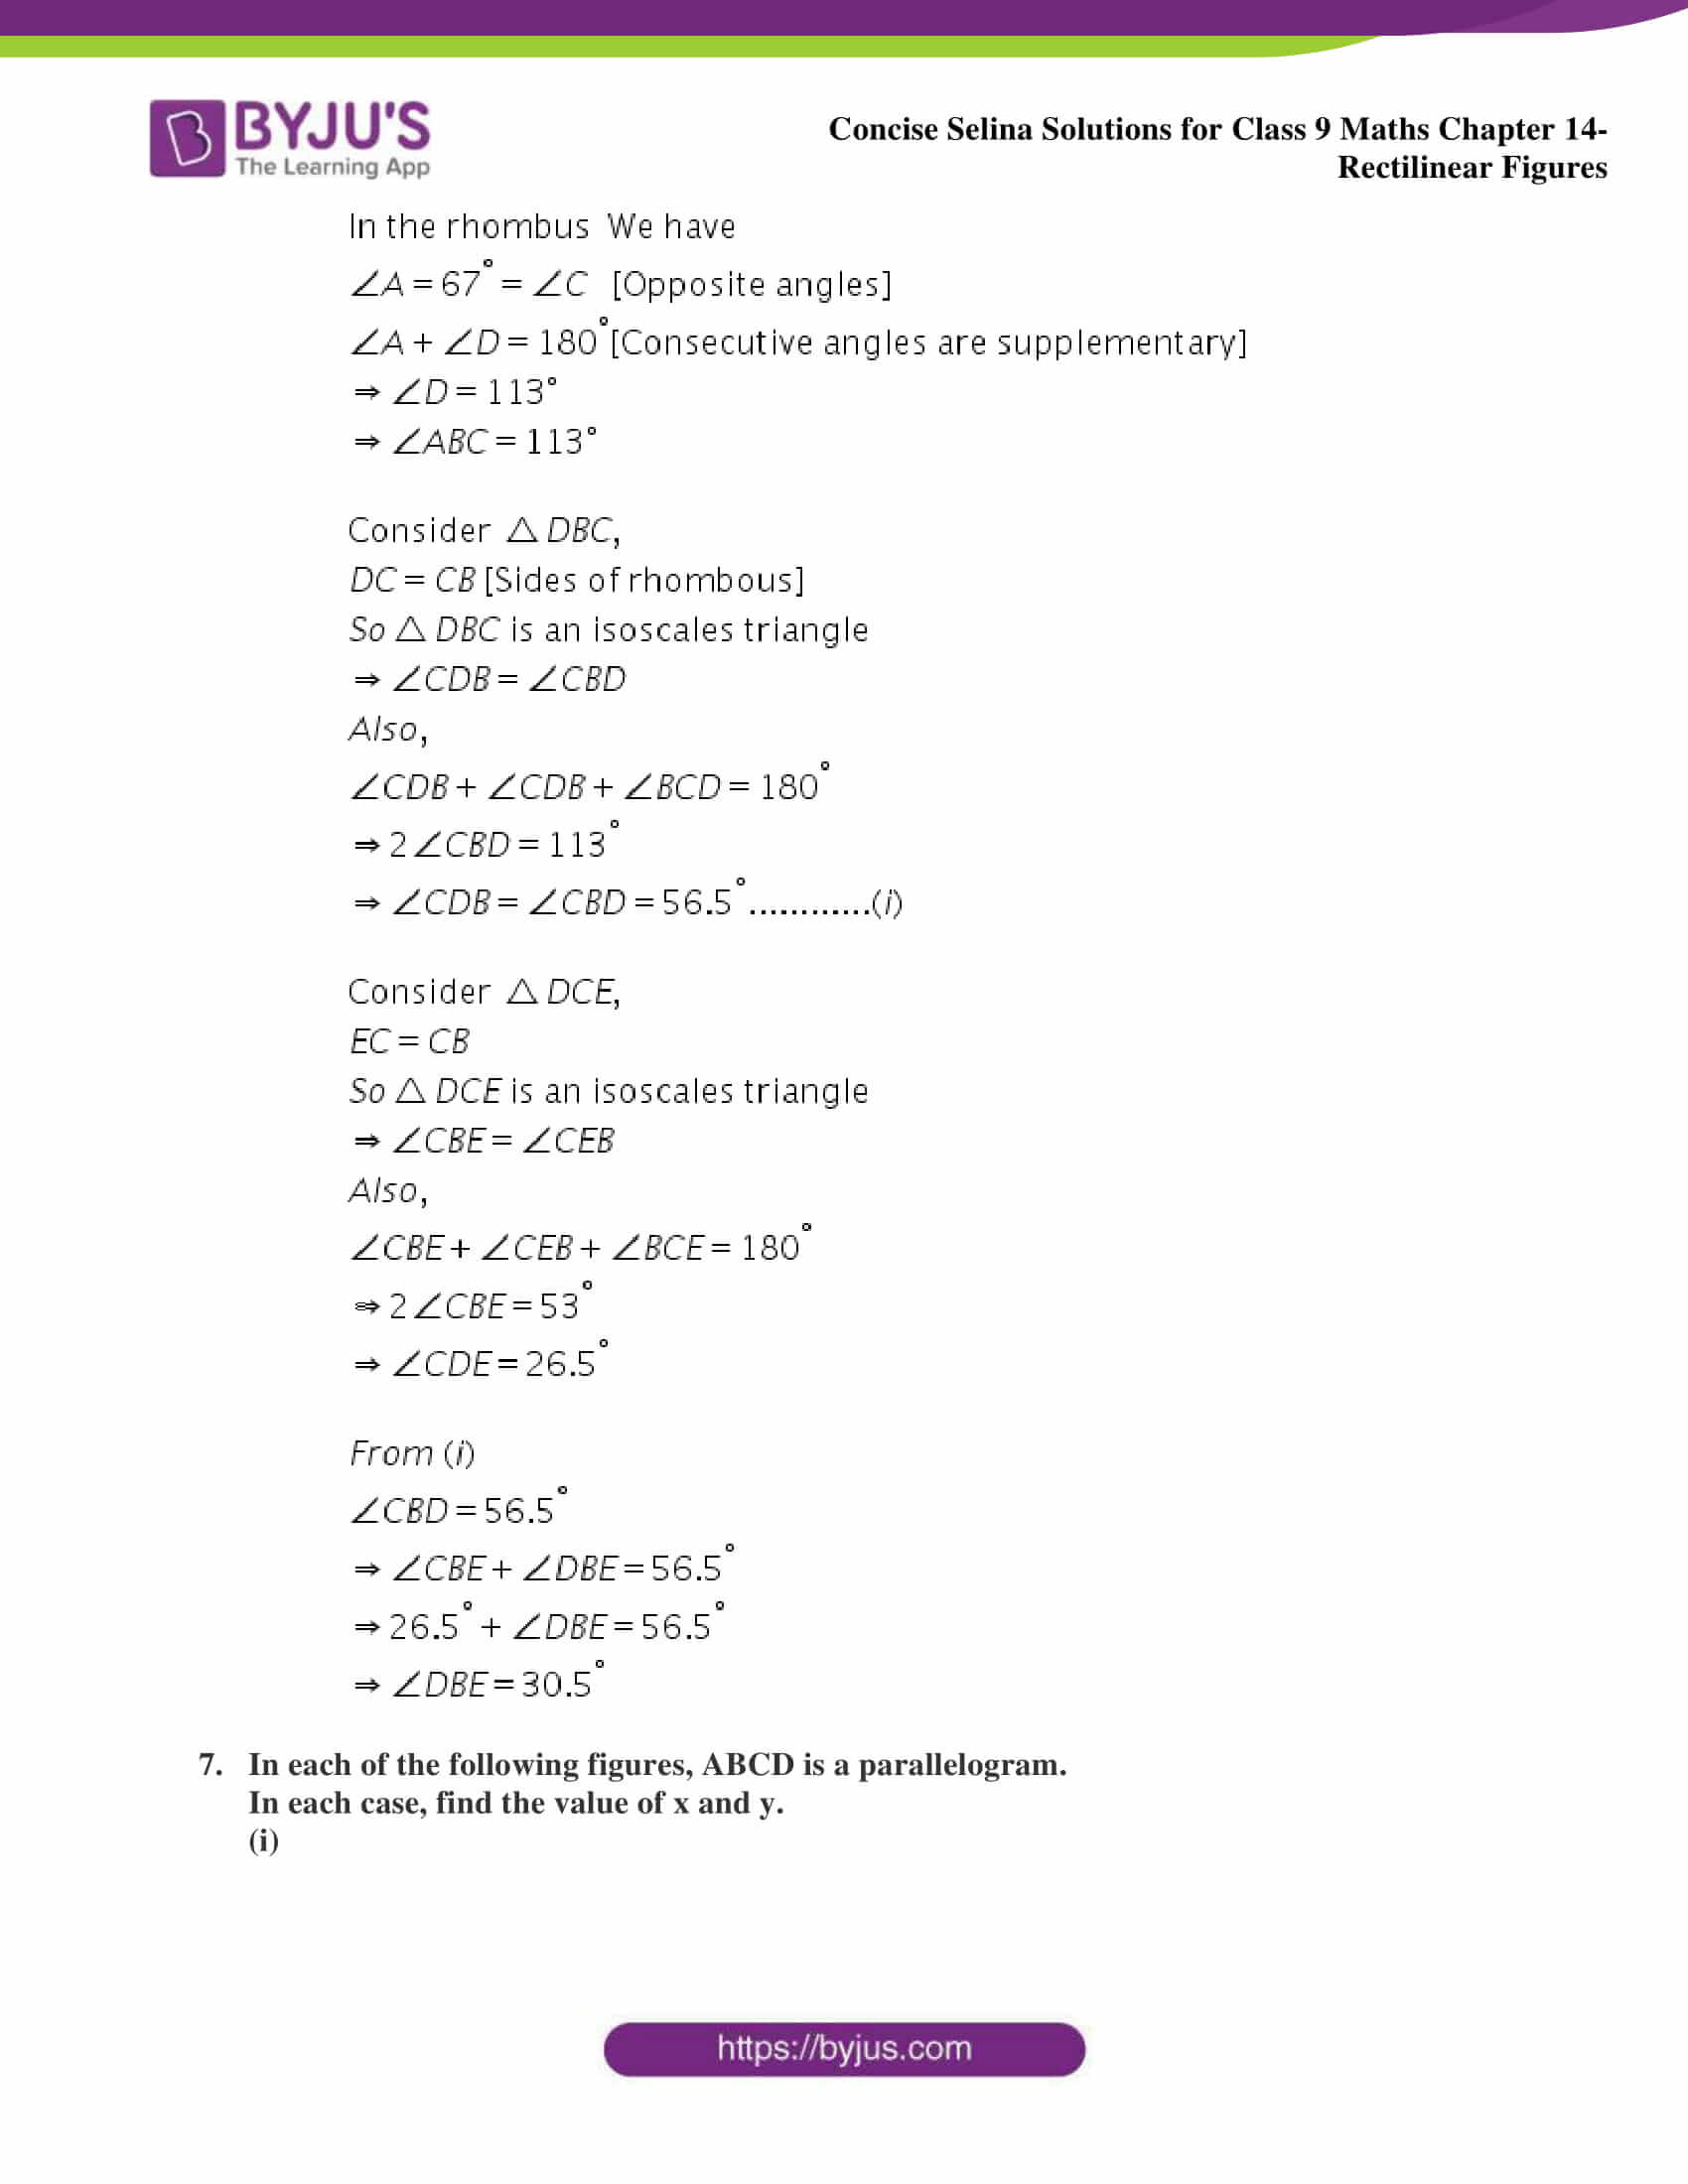 selina Solutions for Class 9 Maths Chapter 14 part 13